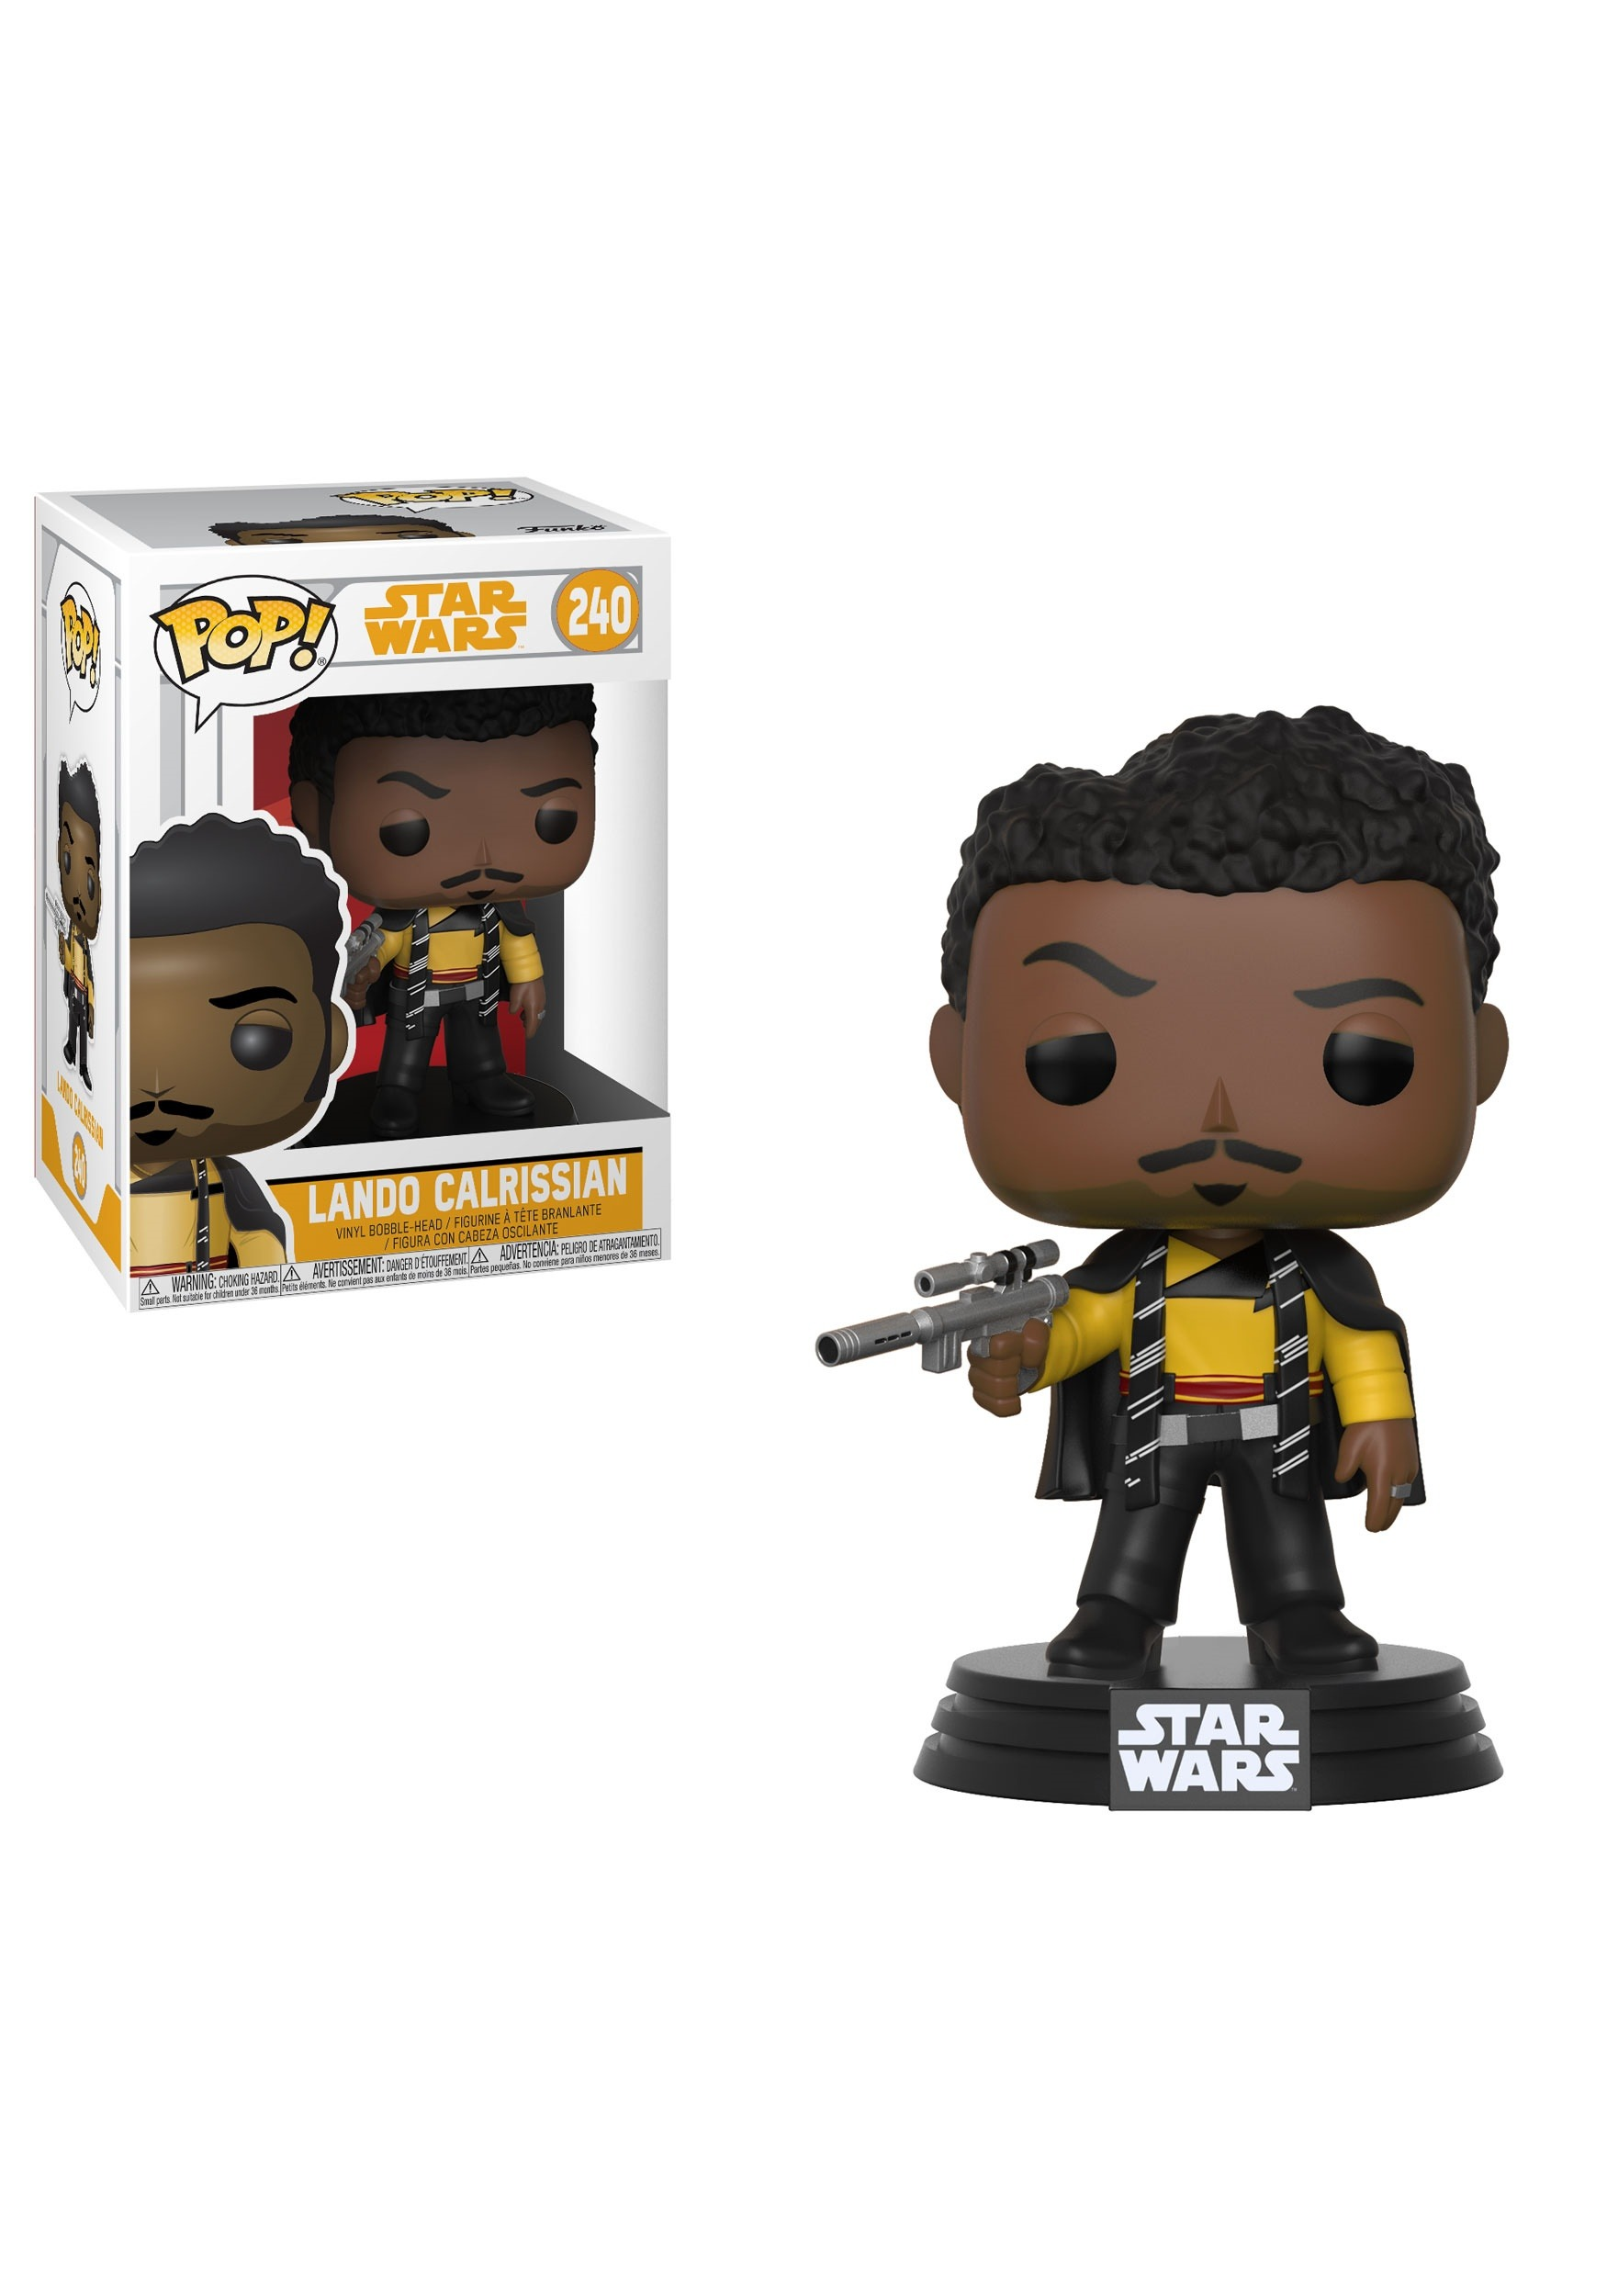 POP! Solo: A Star Wars Story Lando Main Outfit Bobblehead Figure FN26982